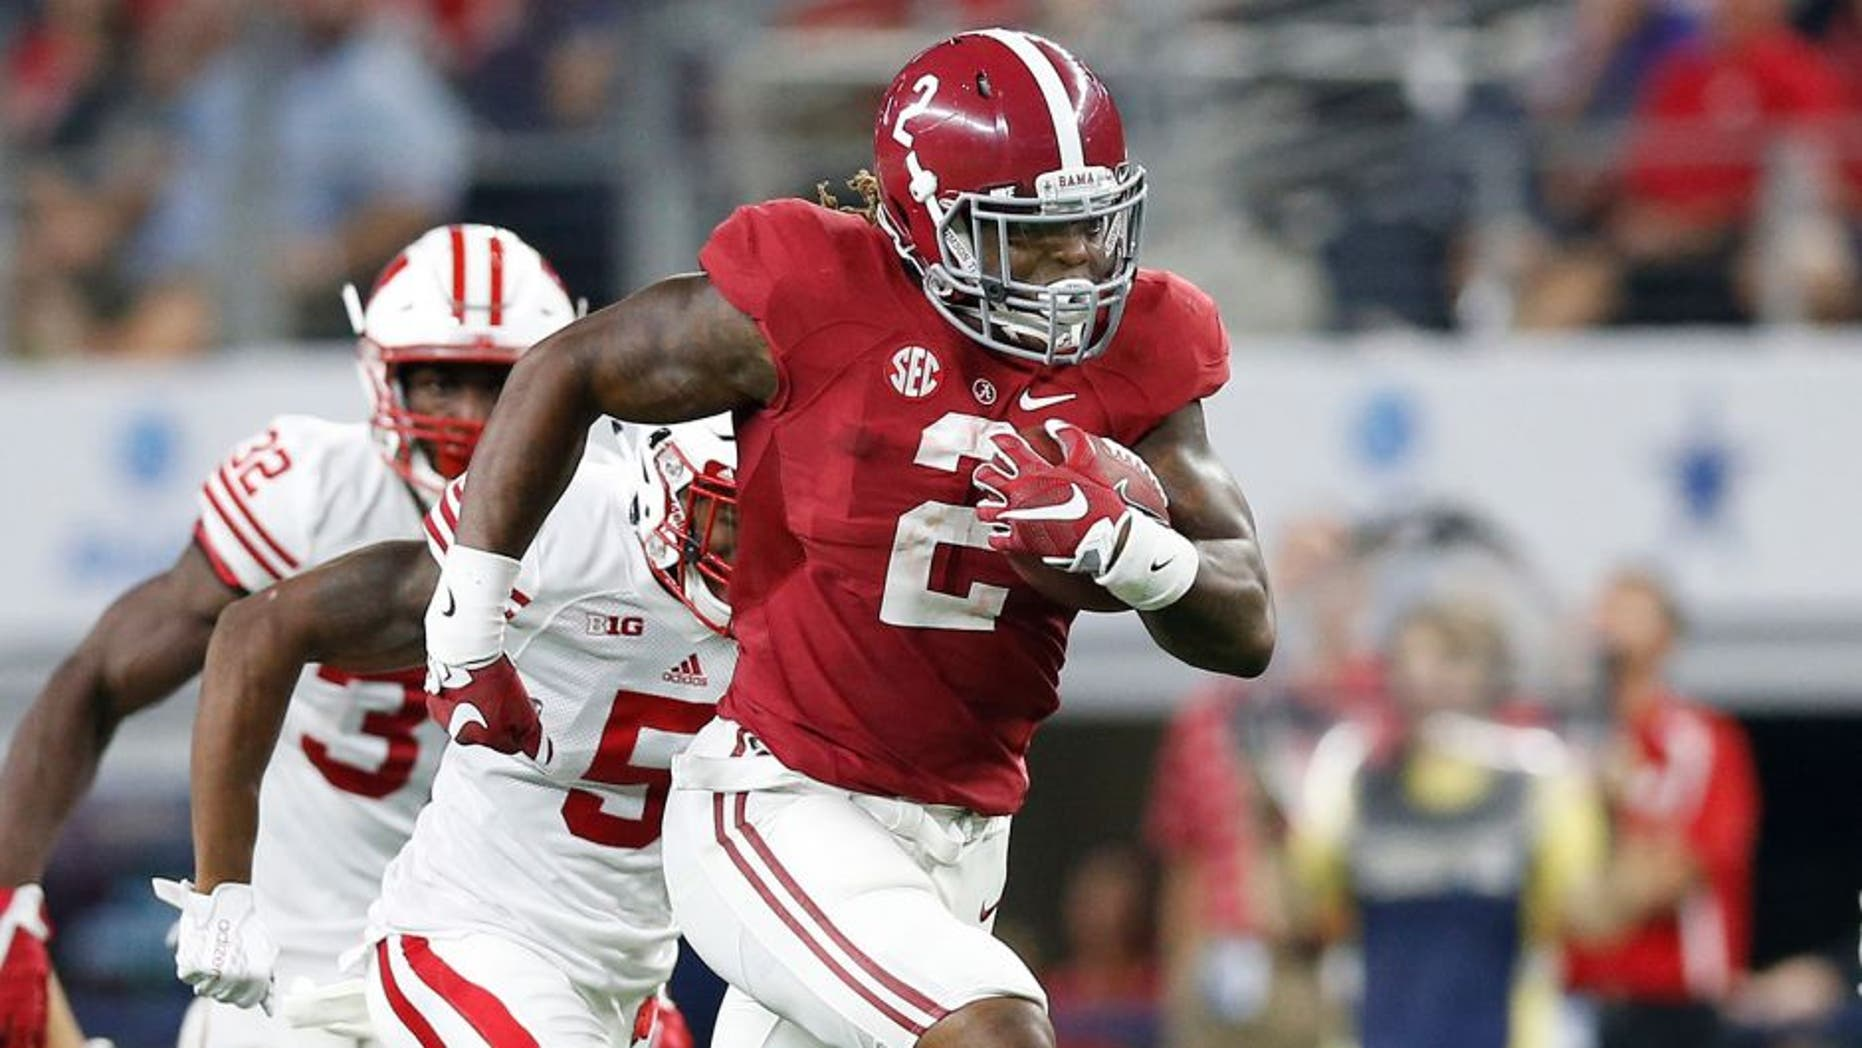 Sep 5, 2015; Arlington, TX, USA; Alabama Crimson Tide running back Derrick Henry (2) runs with the ball for a third quarter touchdown against the Wisconsin Badgers at AT&T Stadium. Mandatory Credit: Matthew Emmons-USA TODAY Sports